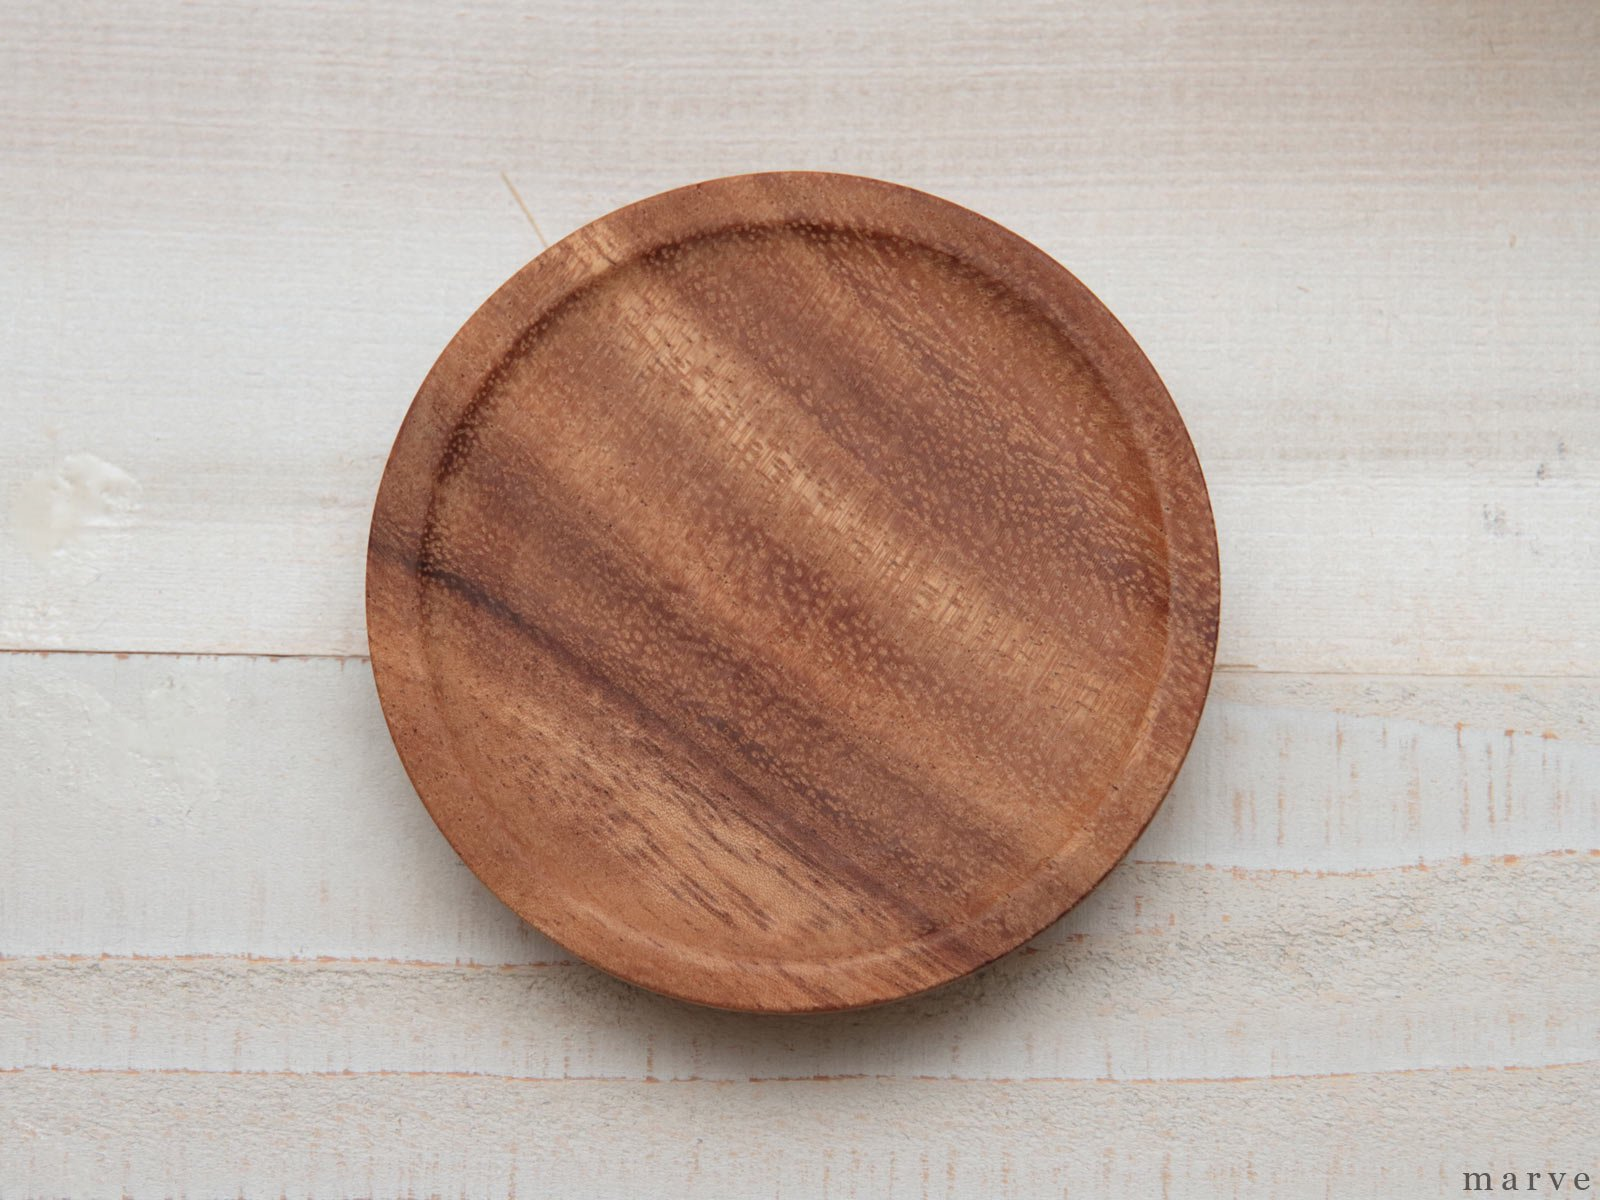 WITH WECK Wooden Lid Φ90 ウイズウェック ウッド蓋90φ<img class='new_mark_img2' src='https://img.shop-pro.jp/img/new/icons1.gif' style='border:none;display:inline;margin:0px;padding:0px;width:auto;' /> グッズ